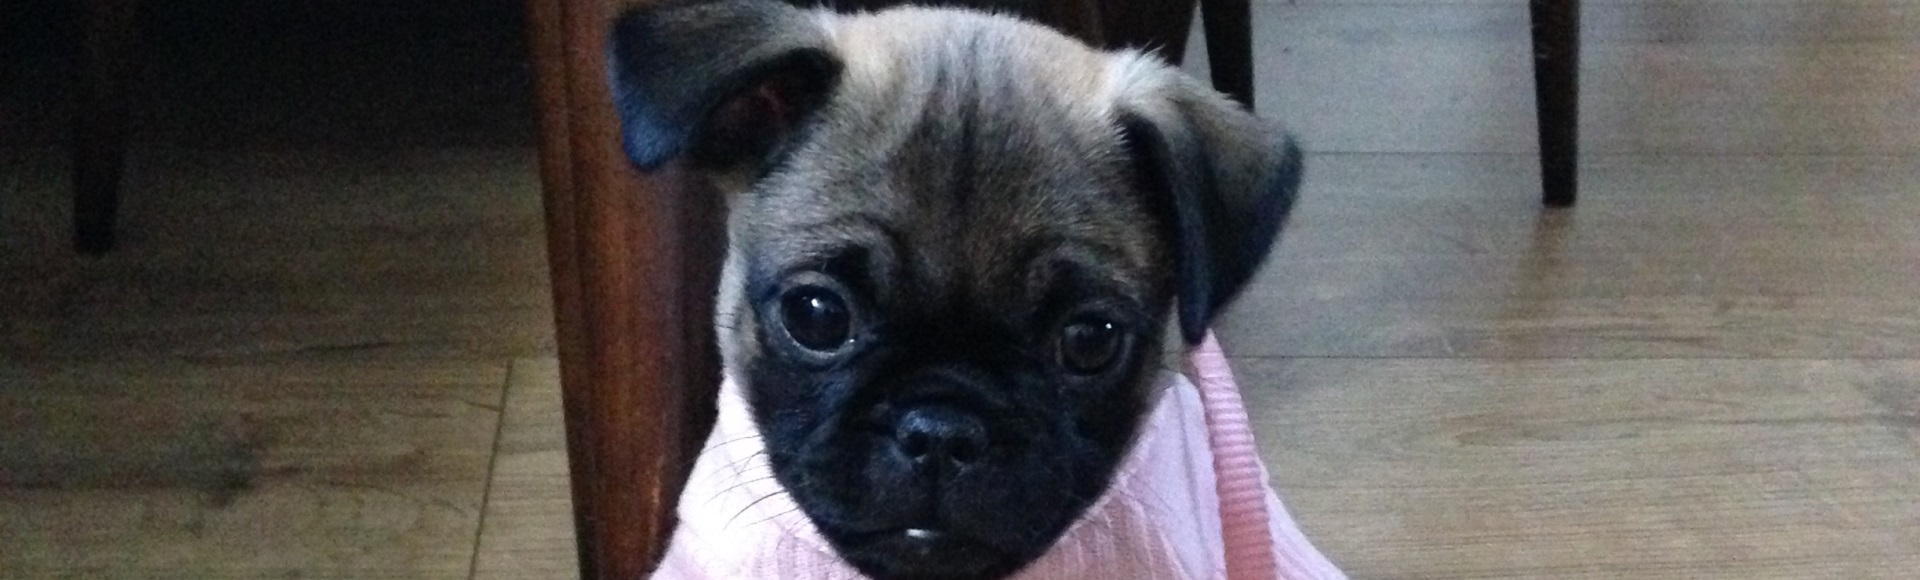 10 things to know before getting a puppy